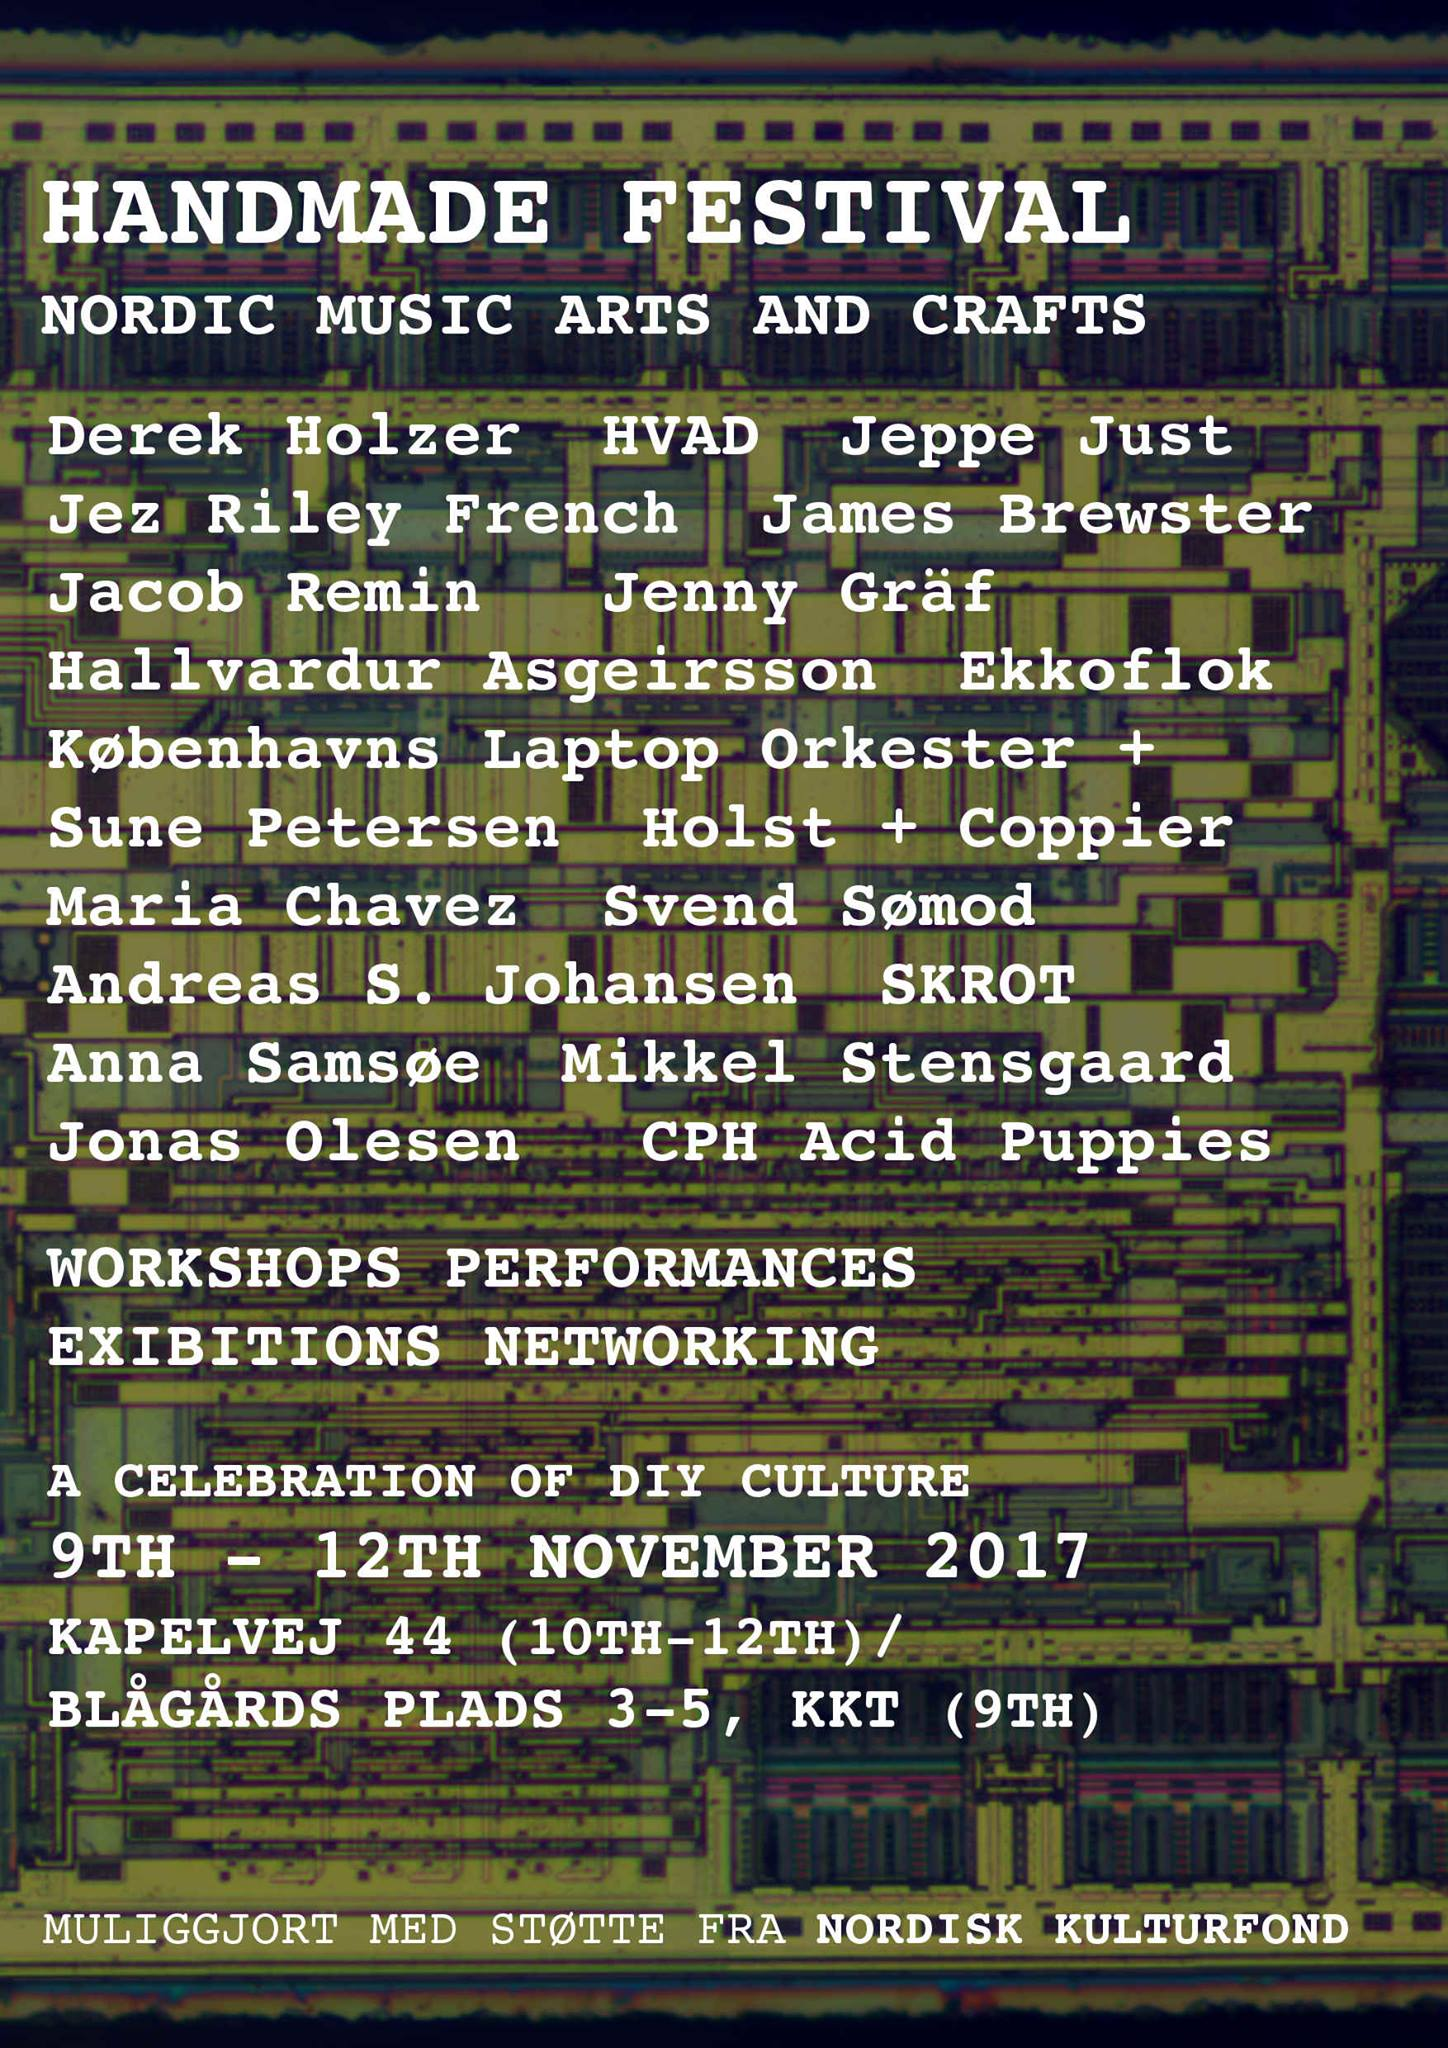 Handmade festival - Nordic Music Arts and Crafts - 9. - 12. November 2017